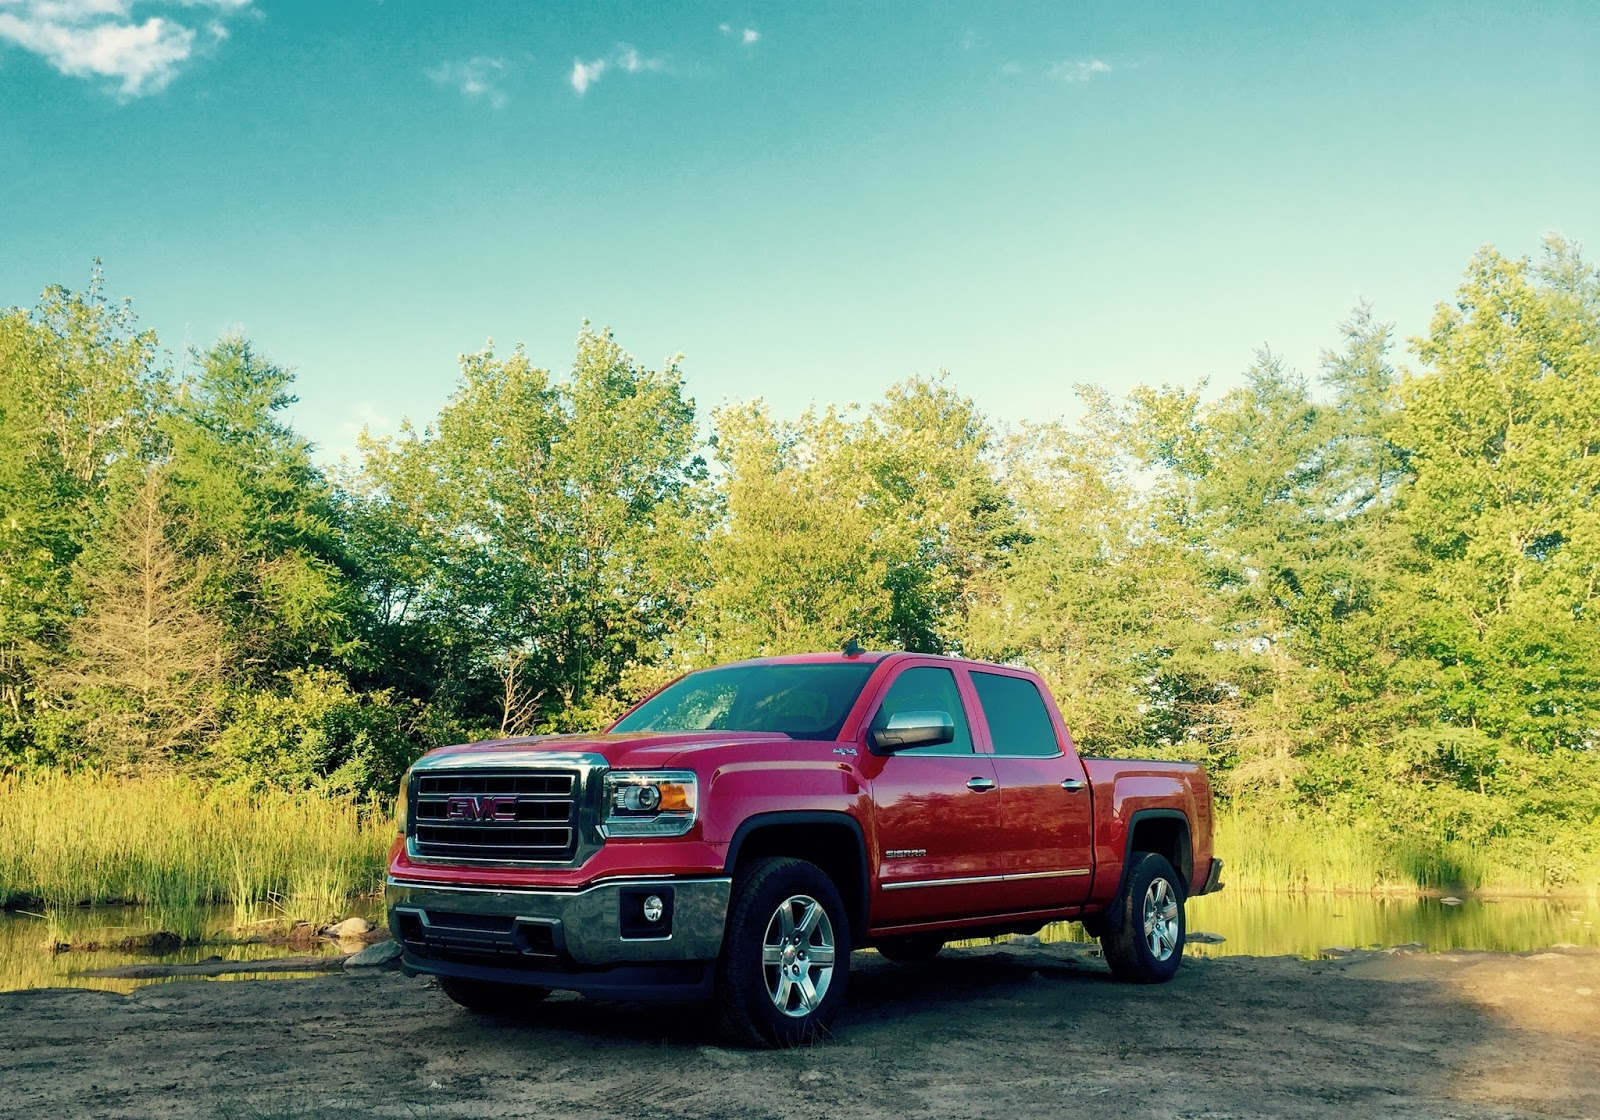 L86 EcoTec3 6 2L Engine Review: 2015 GMC Sierra 1500 4×4